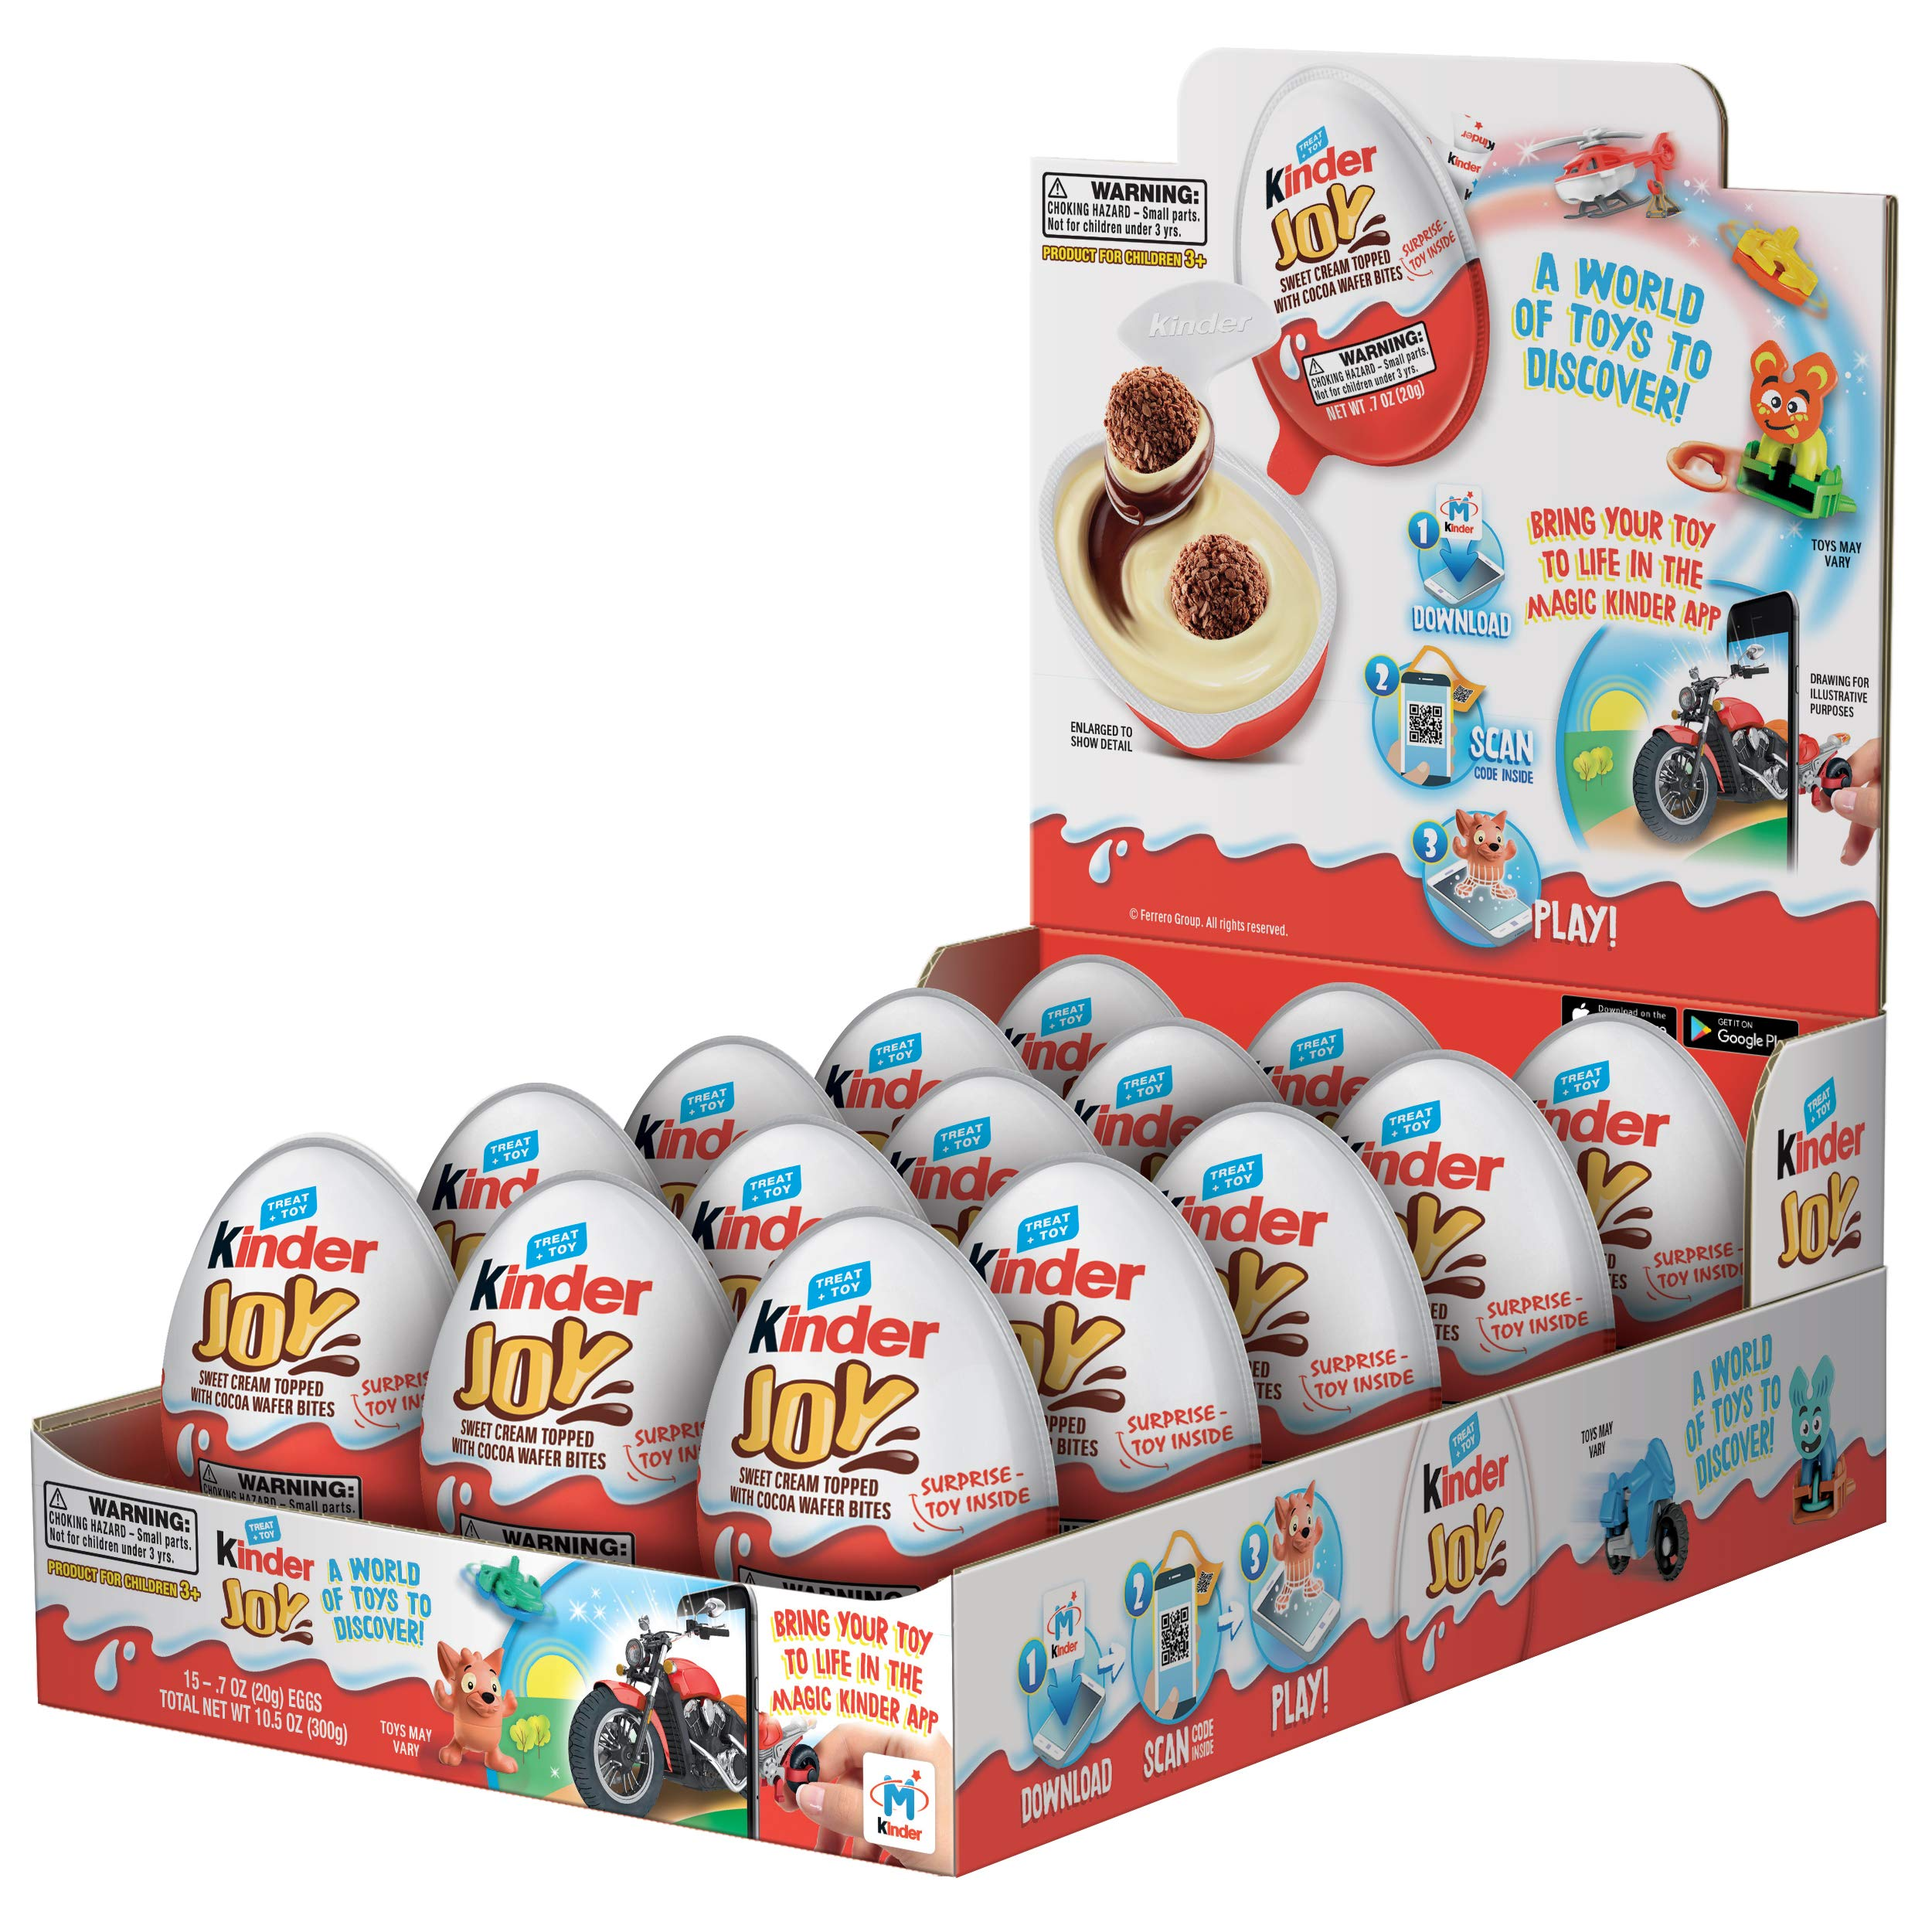 Kinder JOY Eggs, 15 Count Individually Wrapped Chocolate Candy Easter Eggs With Toys Inside, Perfect Easter Basket Stuffers for Kids, 10.5 oz; PACKAGING MAY VARY